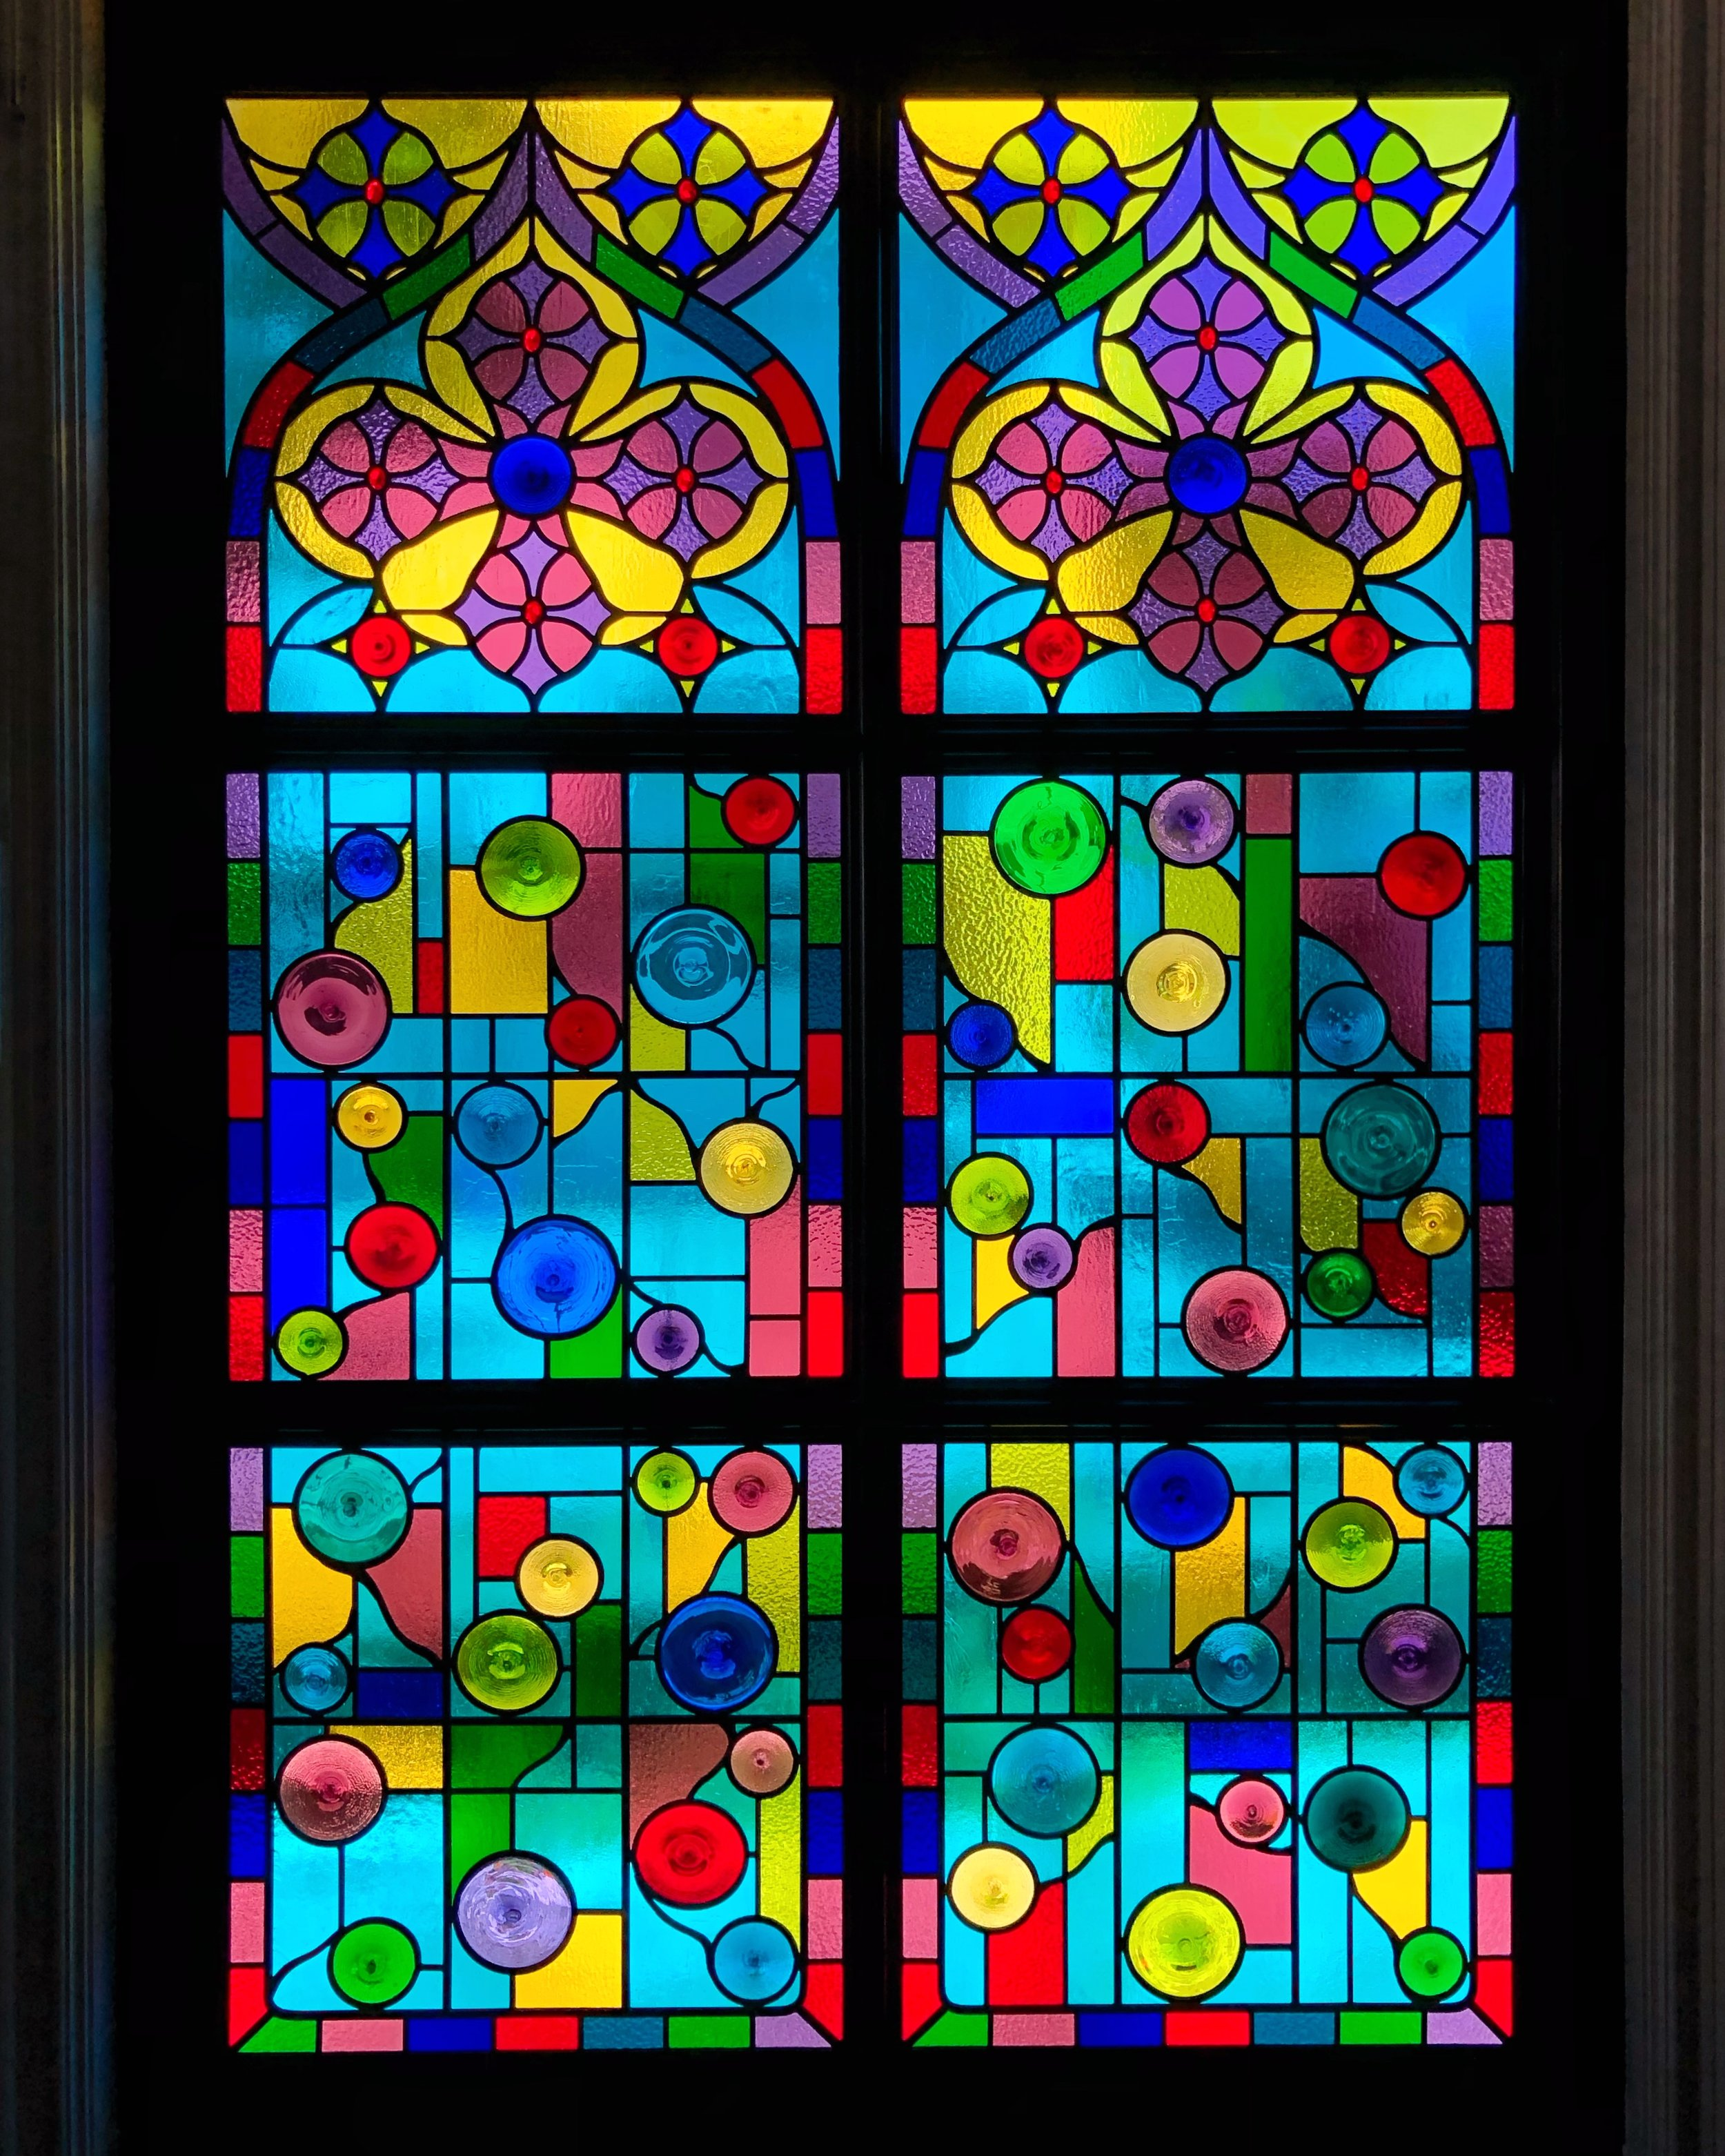 cathedral window st dominics catholic church gothic arch colorful french design stained glass legacy glass studios custom leaded glass wissmach kokomo mouth blown spun rondels privacy window family room.jpg